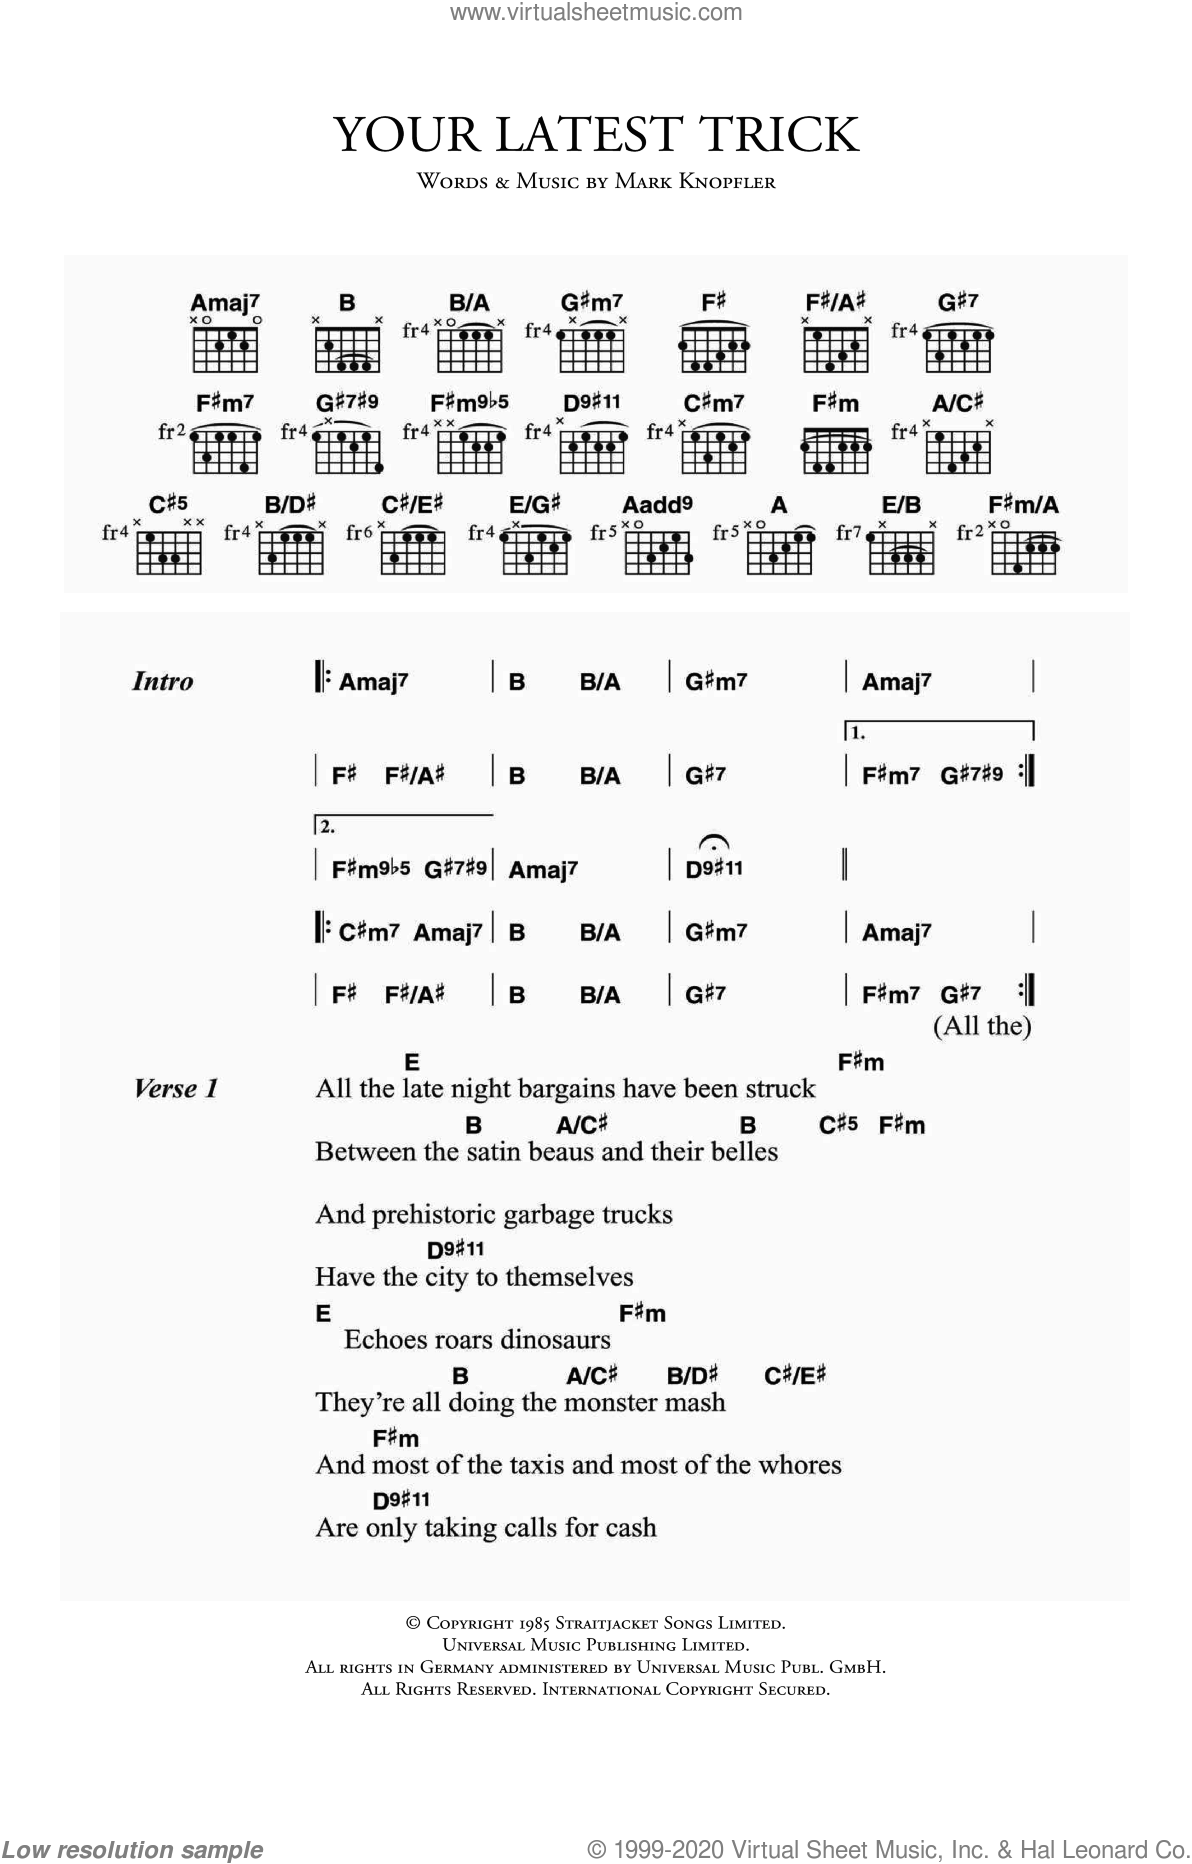 Straits - Your Latest Trick sheet music for guitar (chords) [PDF]